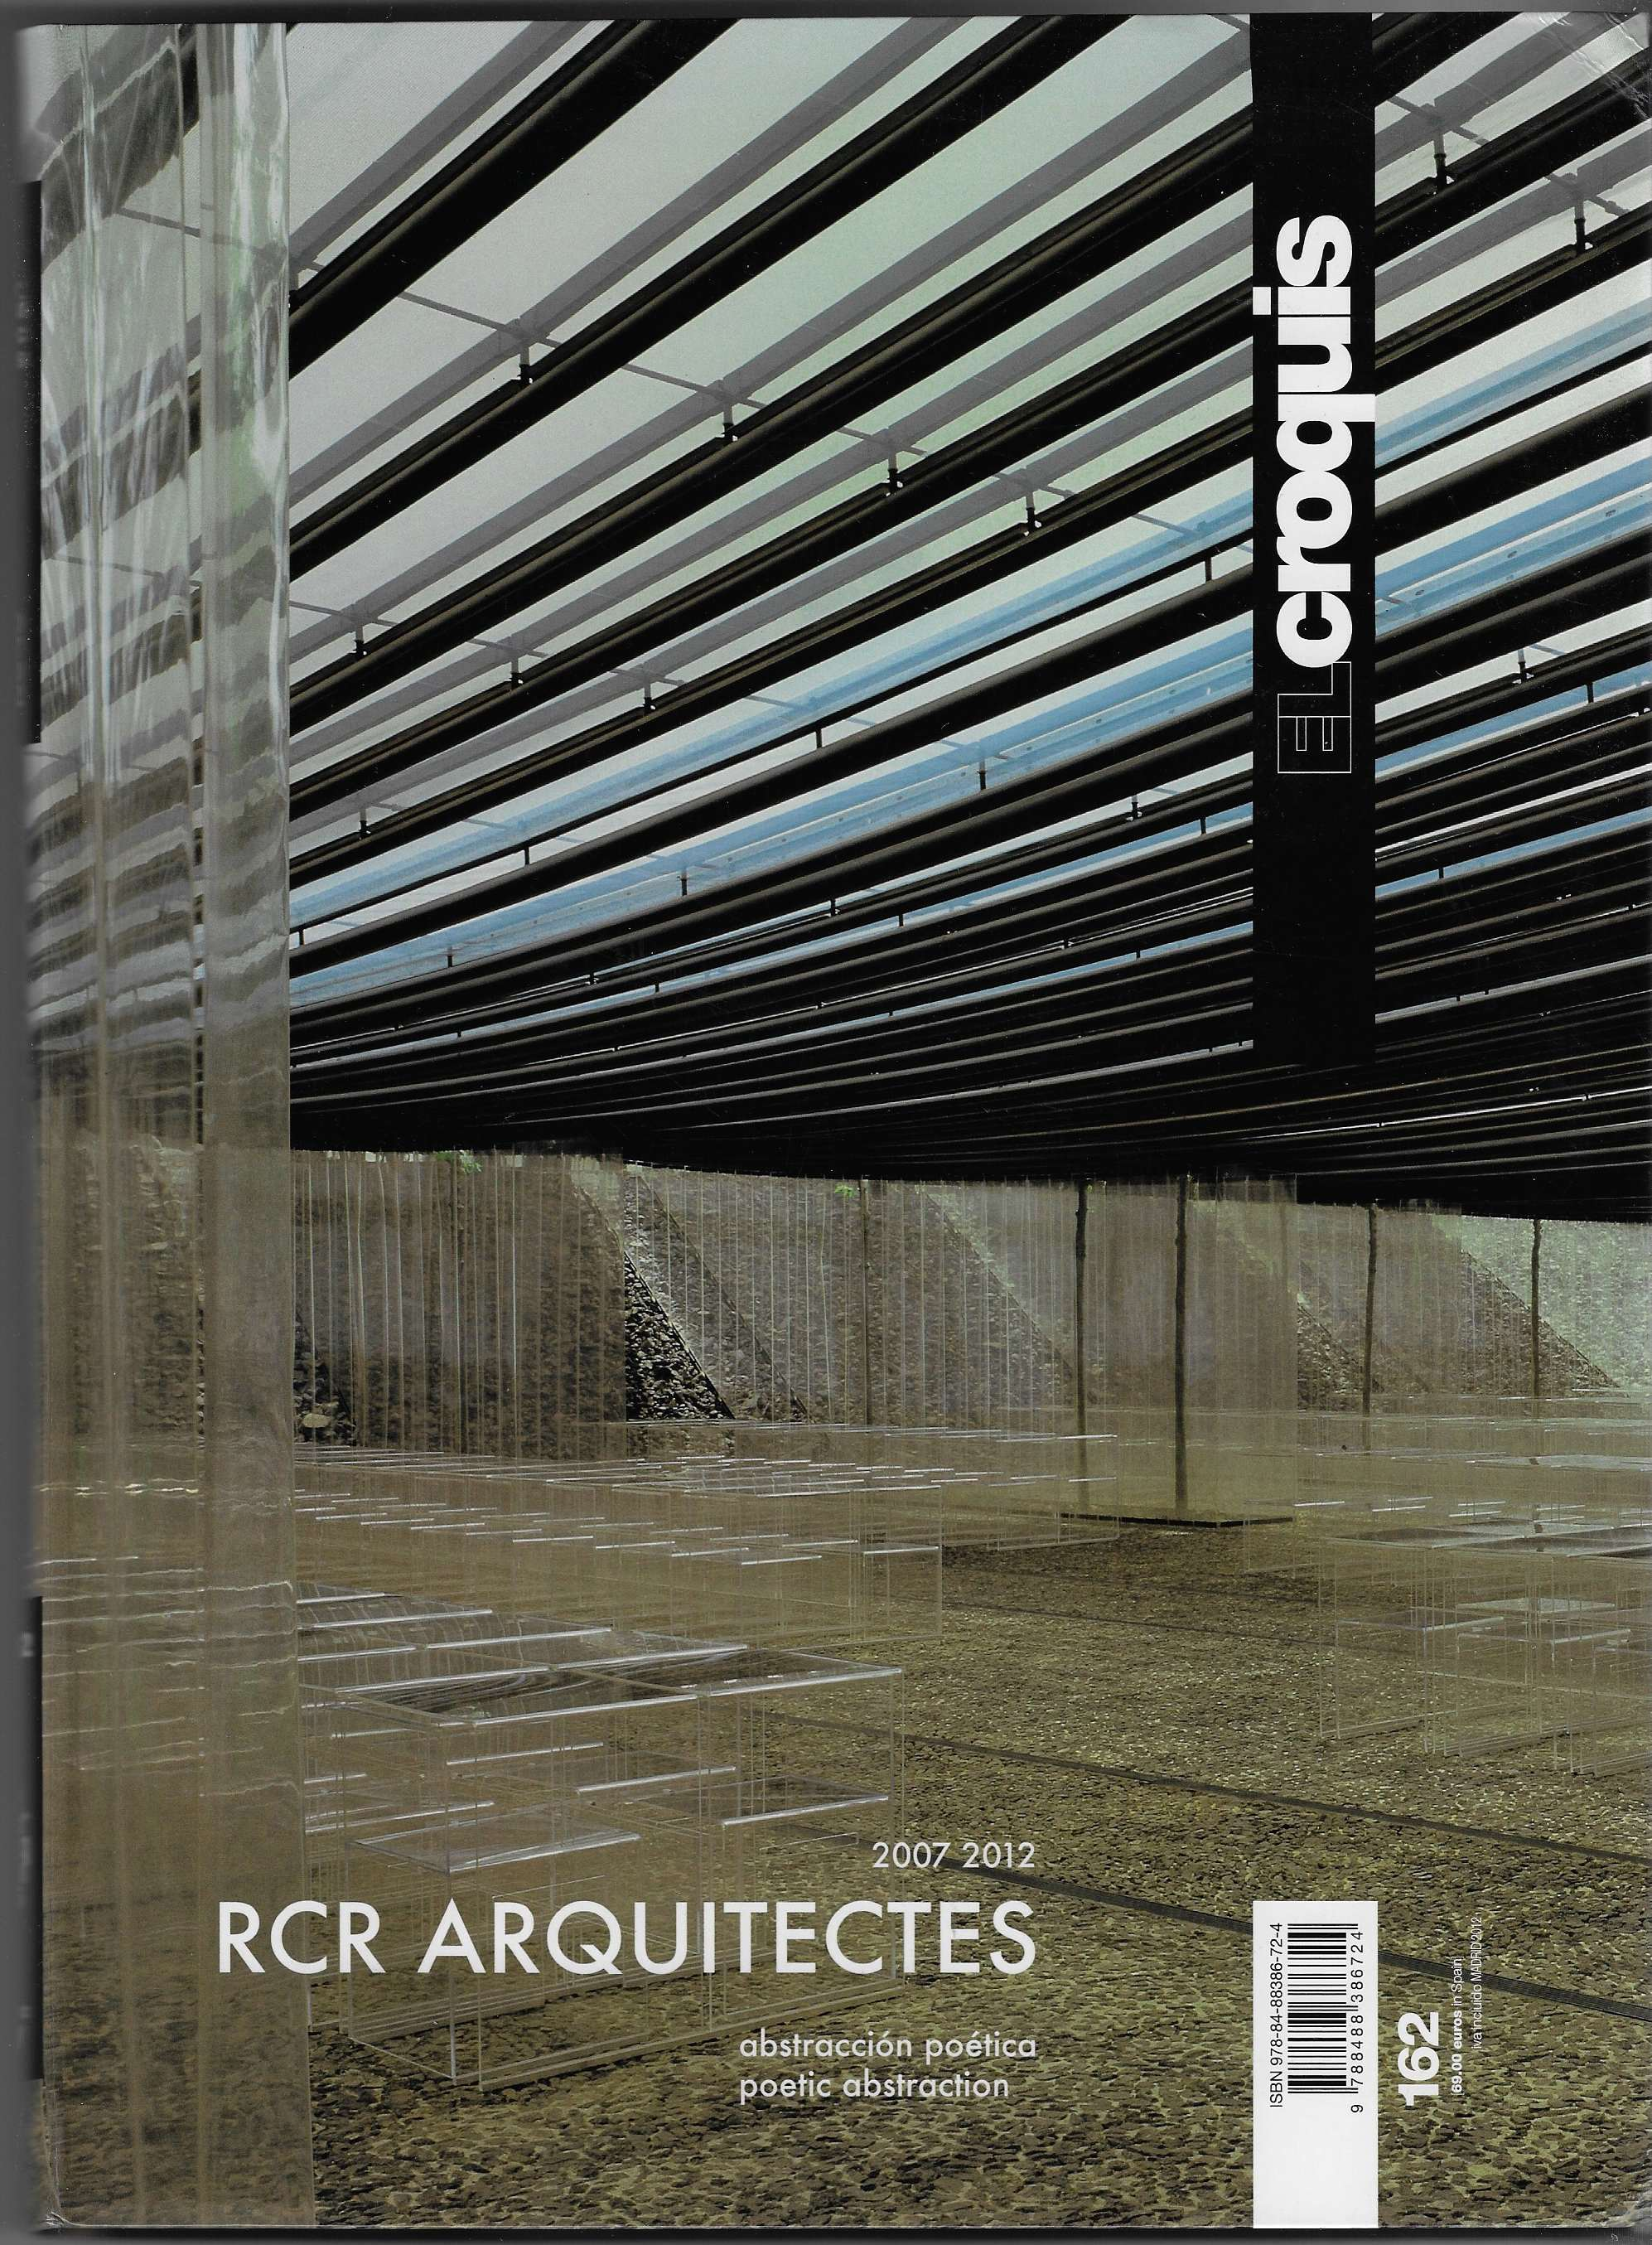 Image for El Croquis 162 - RCR Arquitectes 2007-2012. Poetic Abstraction